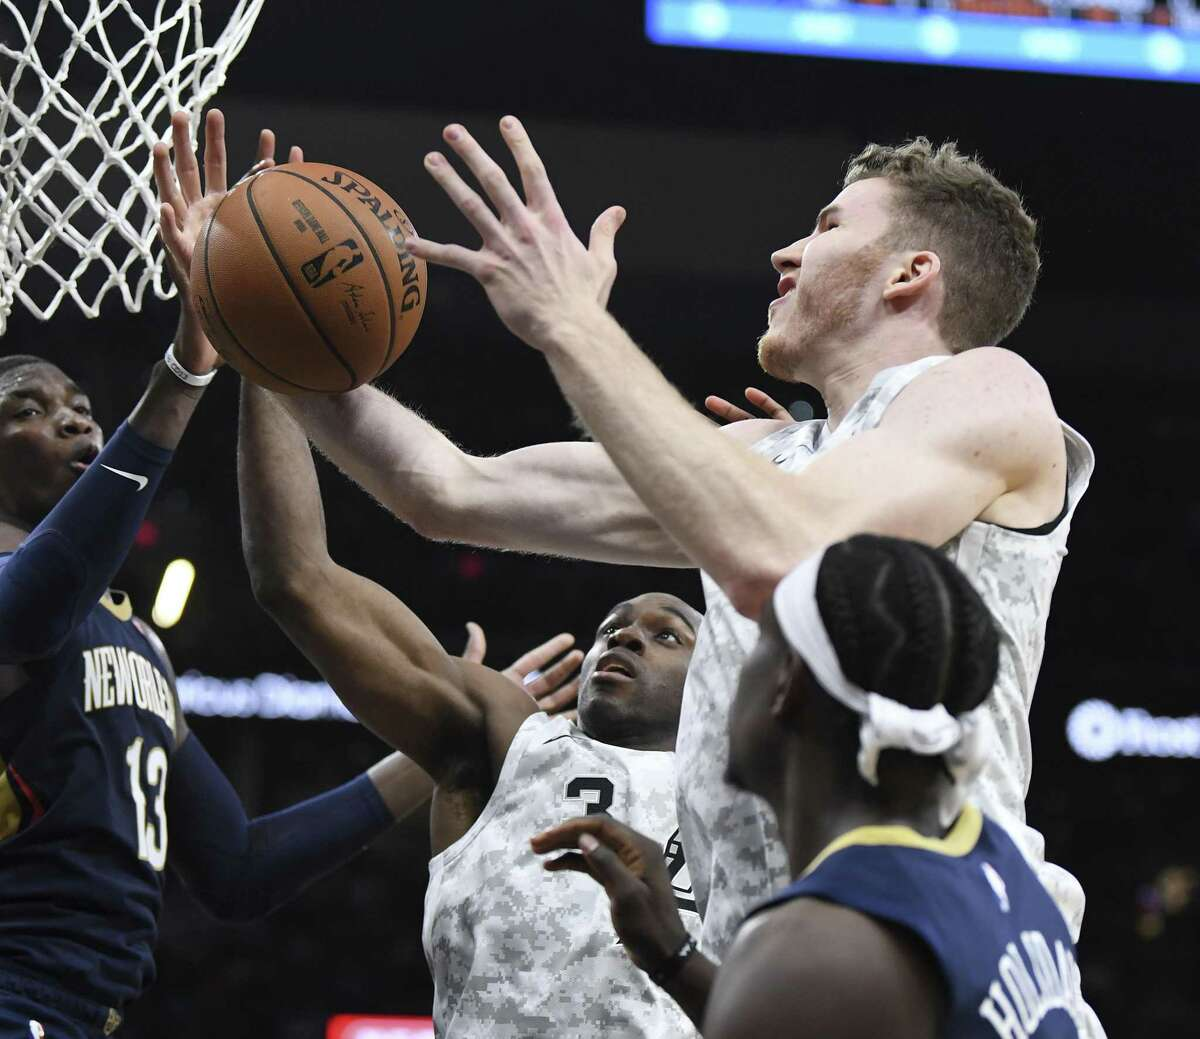 Jakob Poeltl of the San Antonio Spurs comes down with a rebound as teammate Quincy Poindexter (3) and Cheick Diallo (13) and Jrue Holiday (11) of the New Orleans Saints reach for it during NBA action in the AT&T Center on Saturday, Feb. 2, 2019.